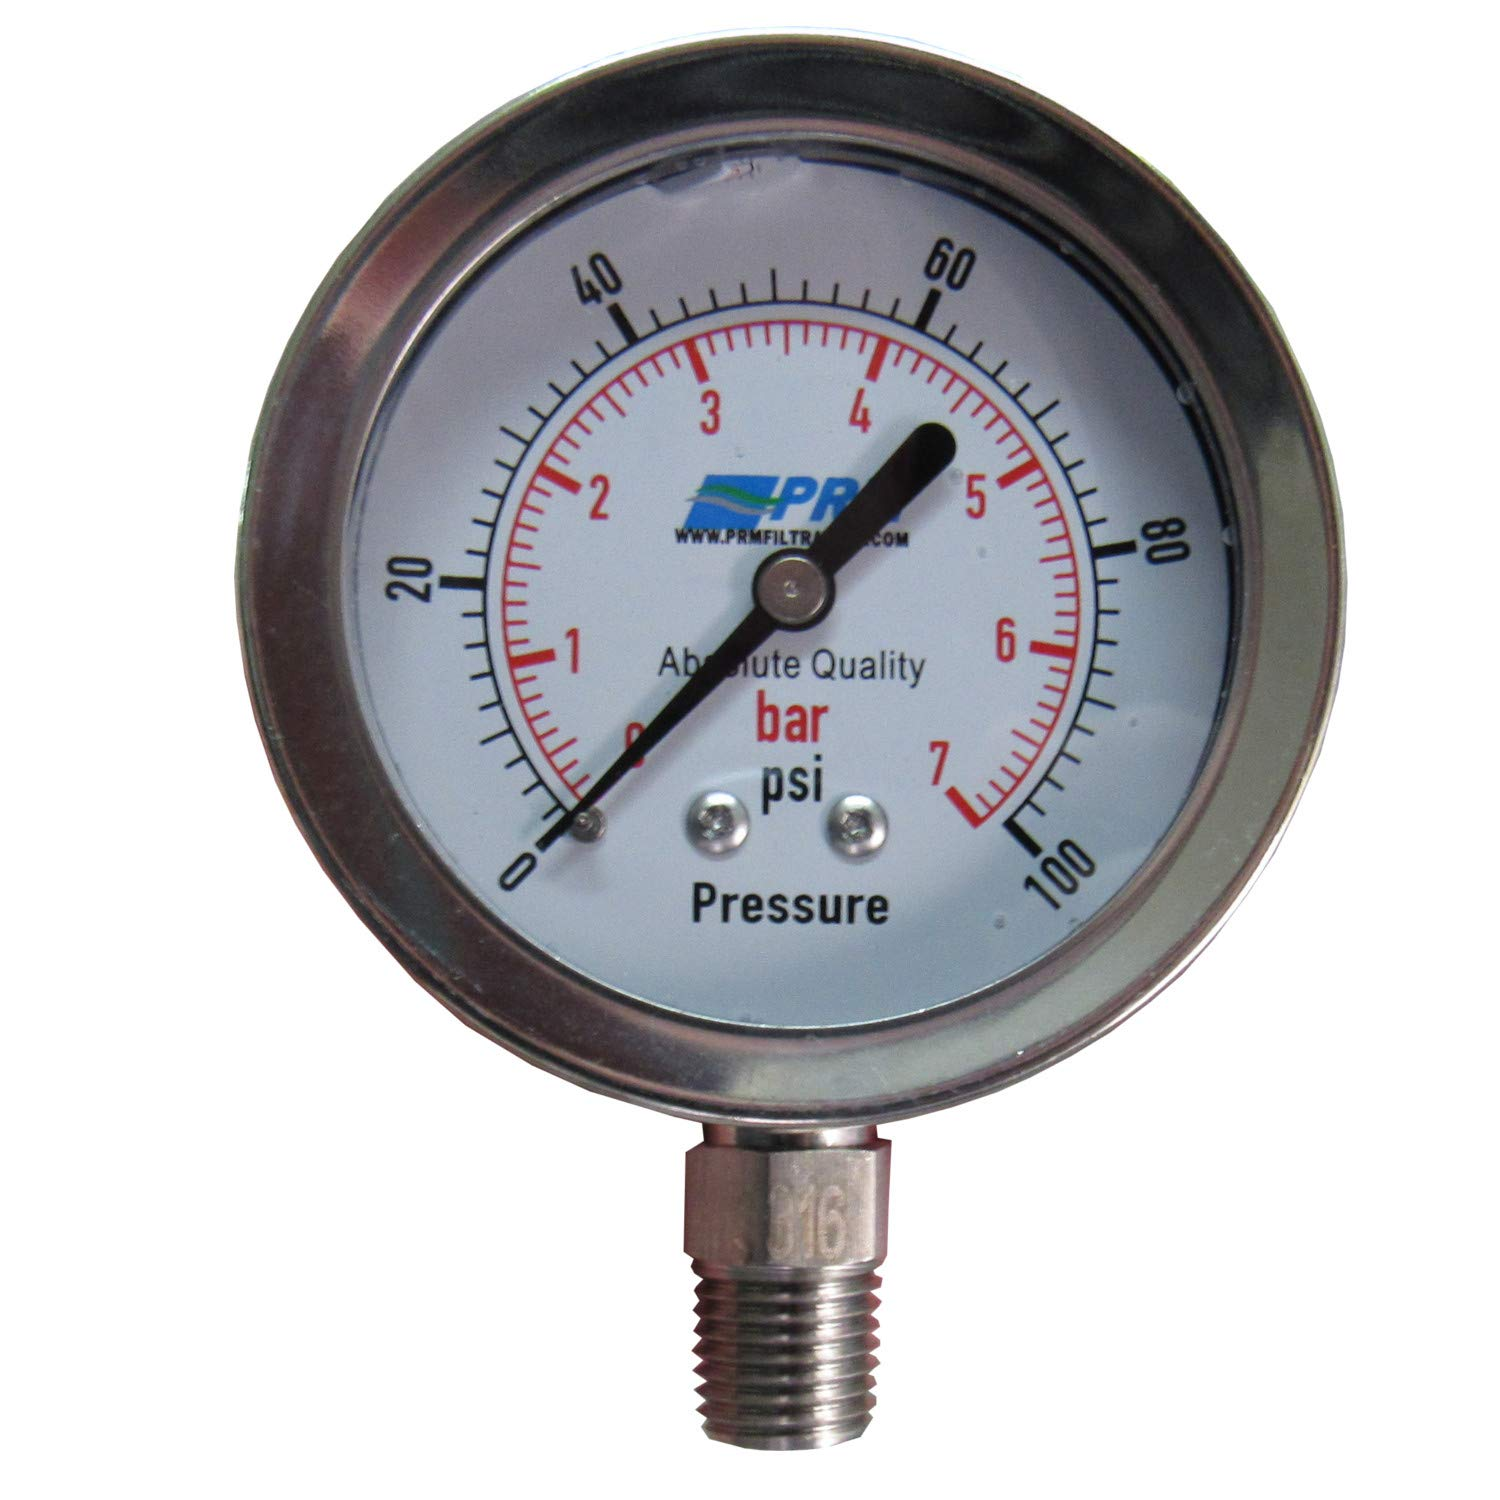 PRM Pressure Gauge, 0-100 PSI / 0-7 BAR - 2.5 Inch SS Case, 1/4 Inch NPT Bottom Connect, Stainless Steel Internals and Fitting